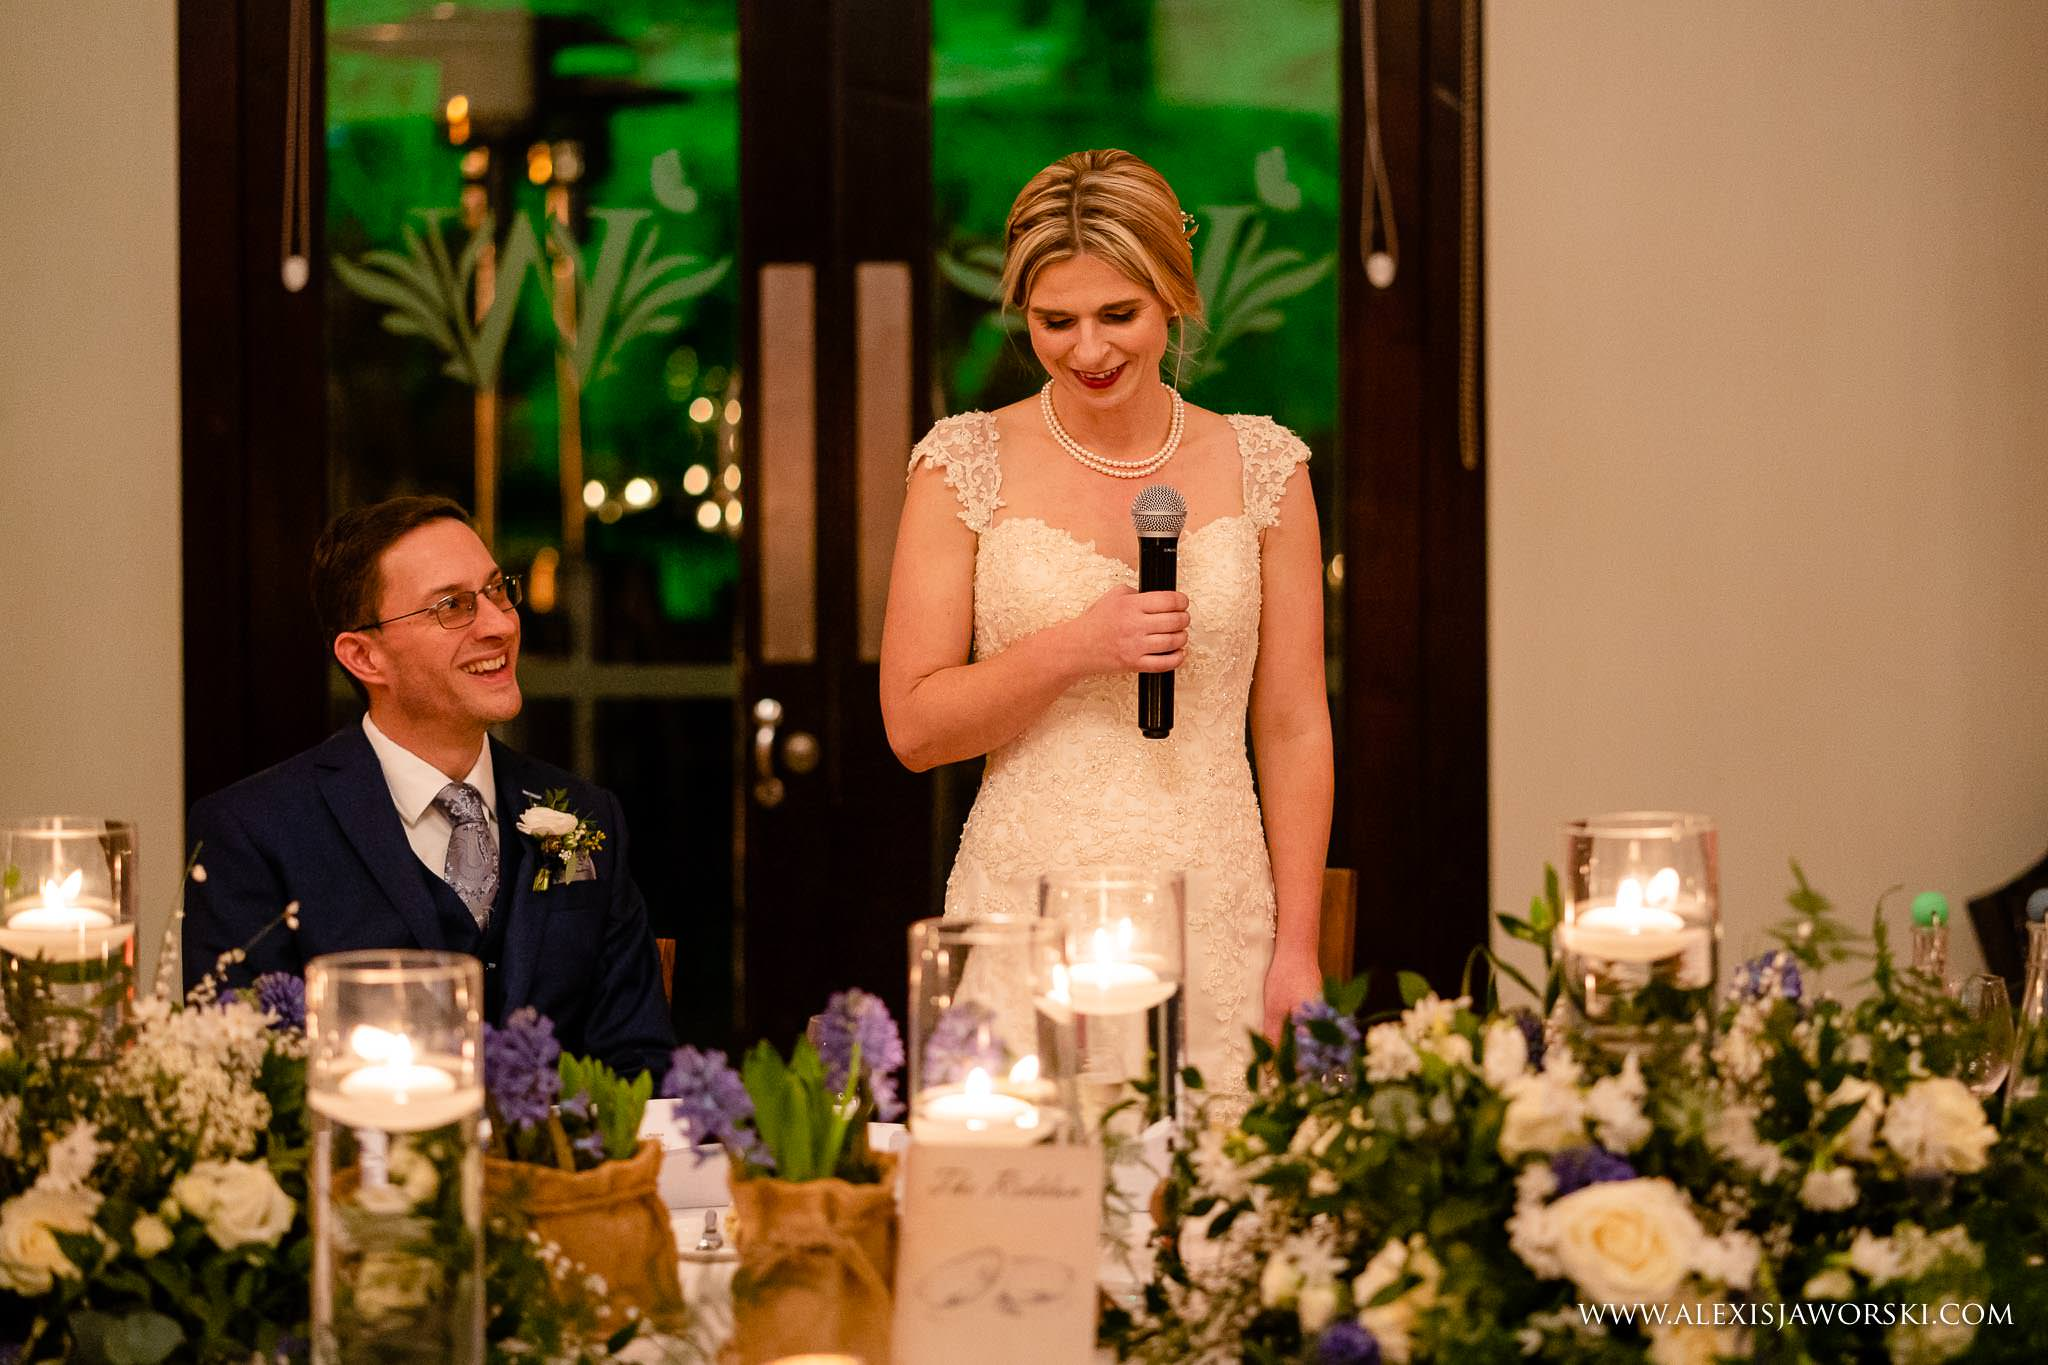 speeches in the evening